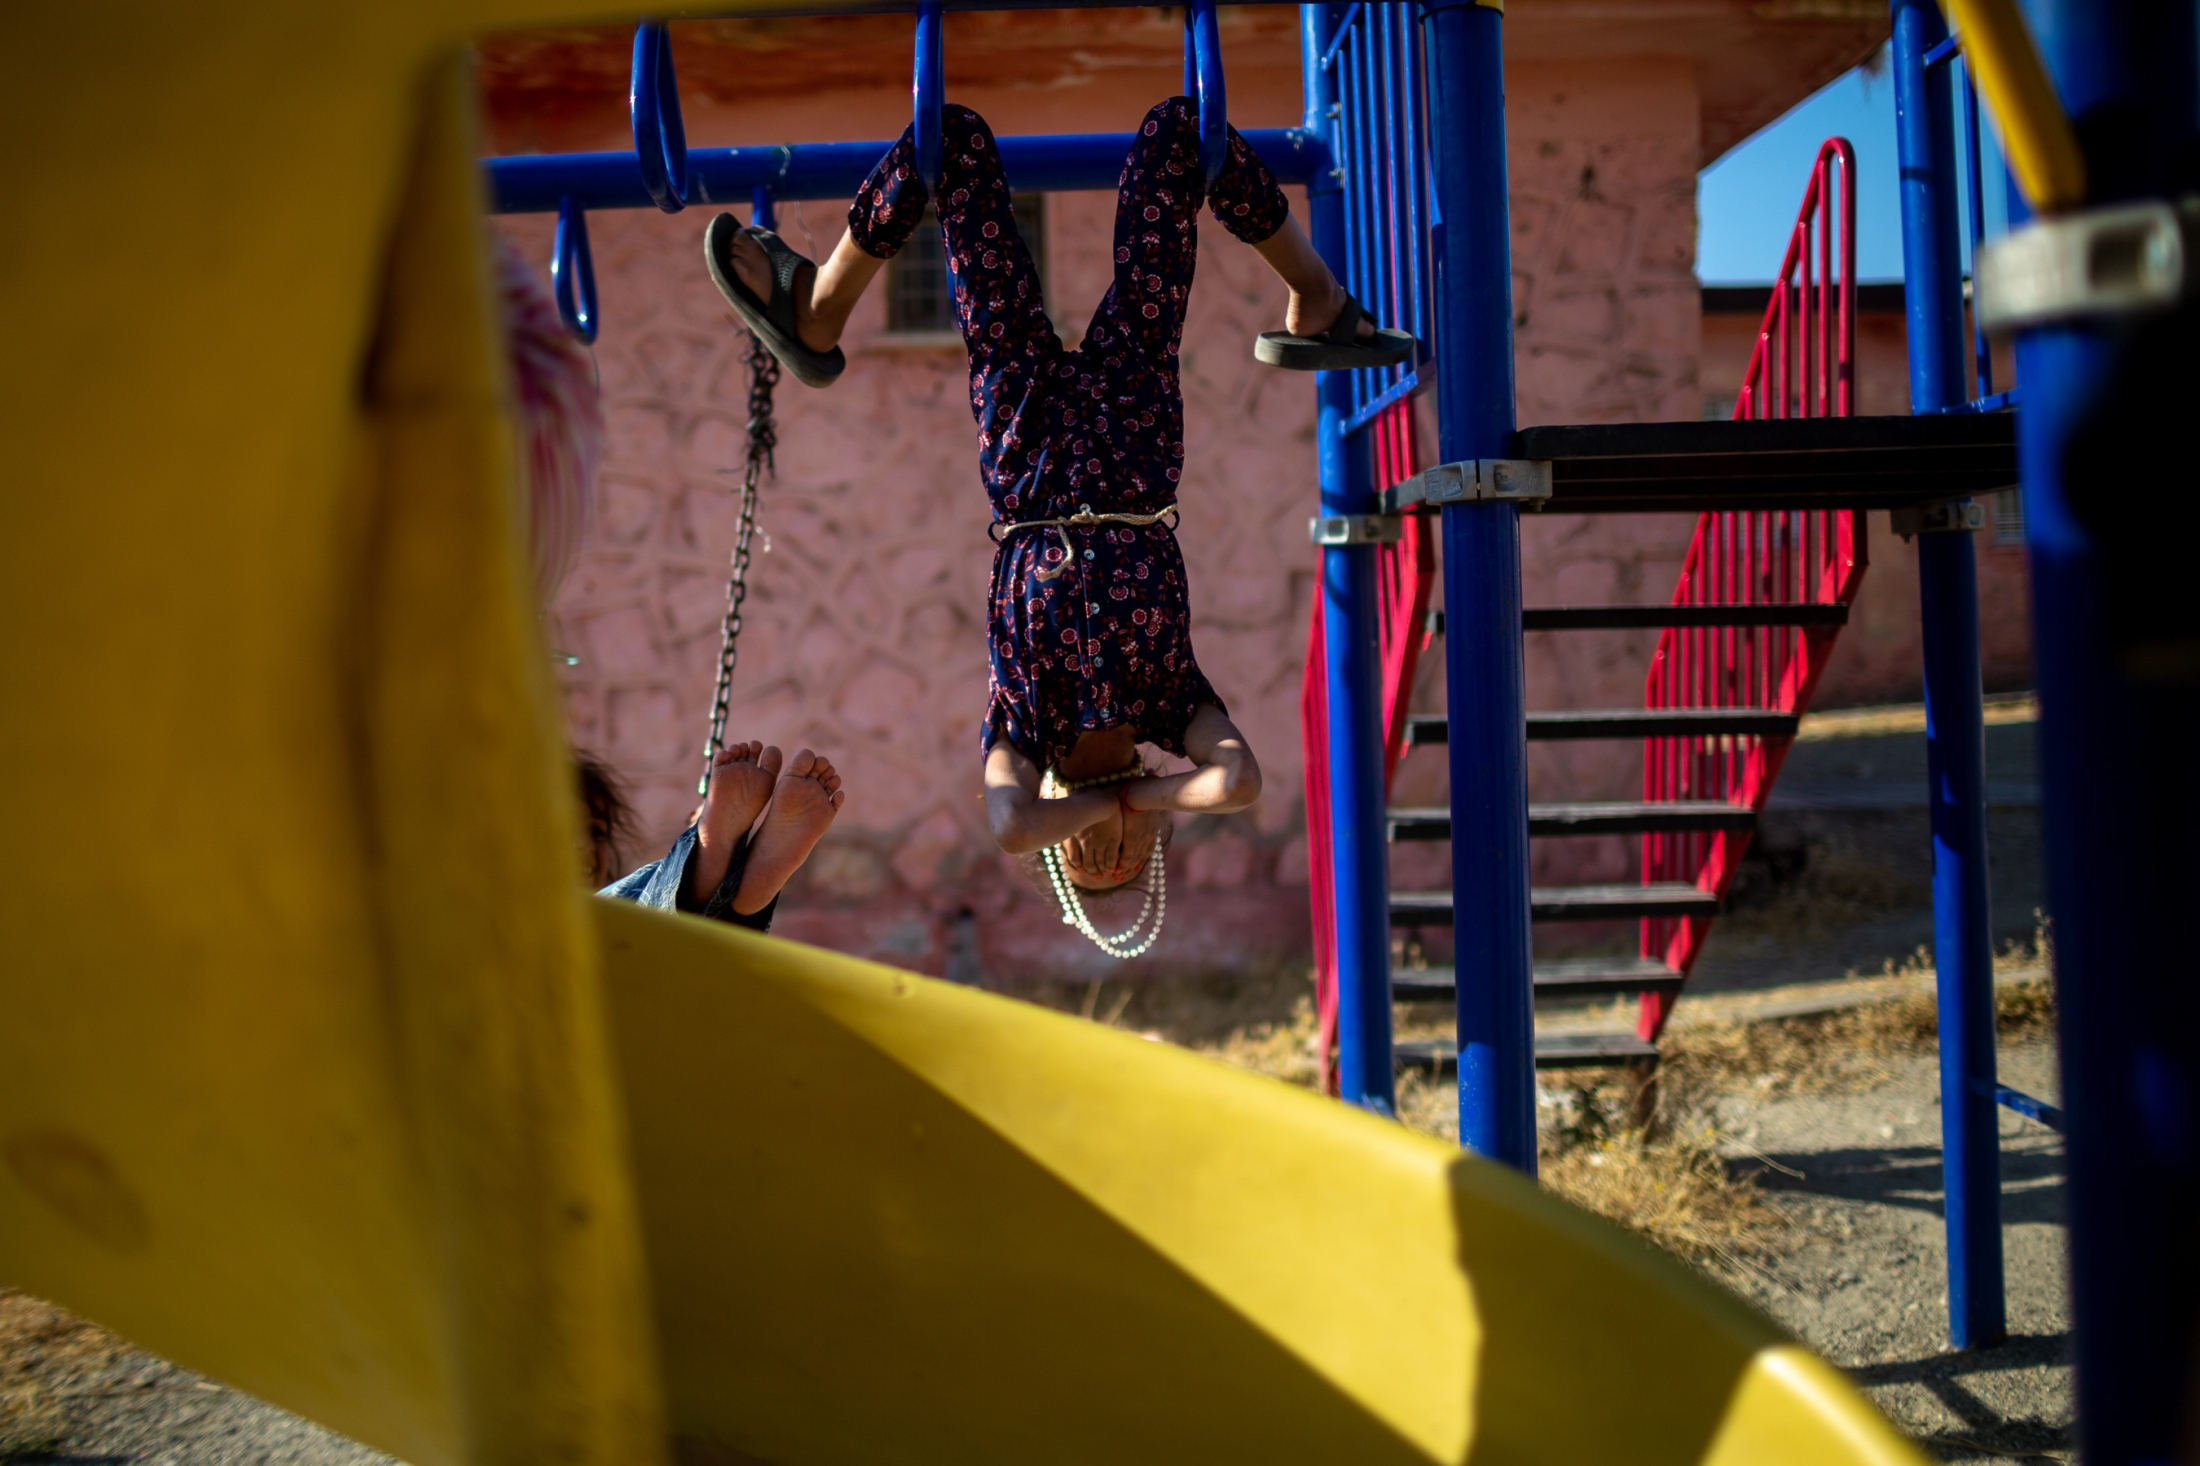 Young children play in the schools's playground during the summer recess. Their village is one close to Hasankeyf and in the flood zone. They will have to move before the flood waters from the Ilisu Dam's artificial lake arrive.